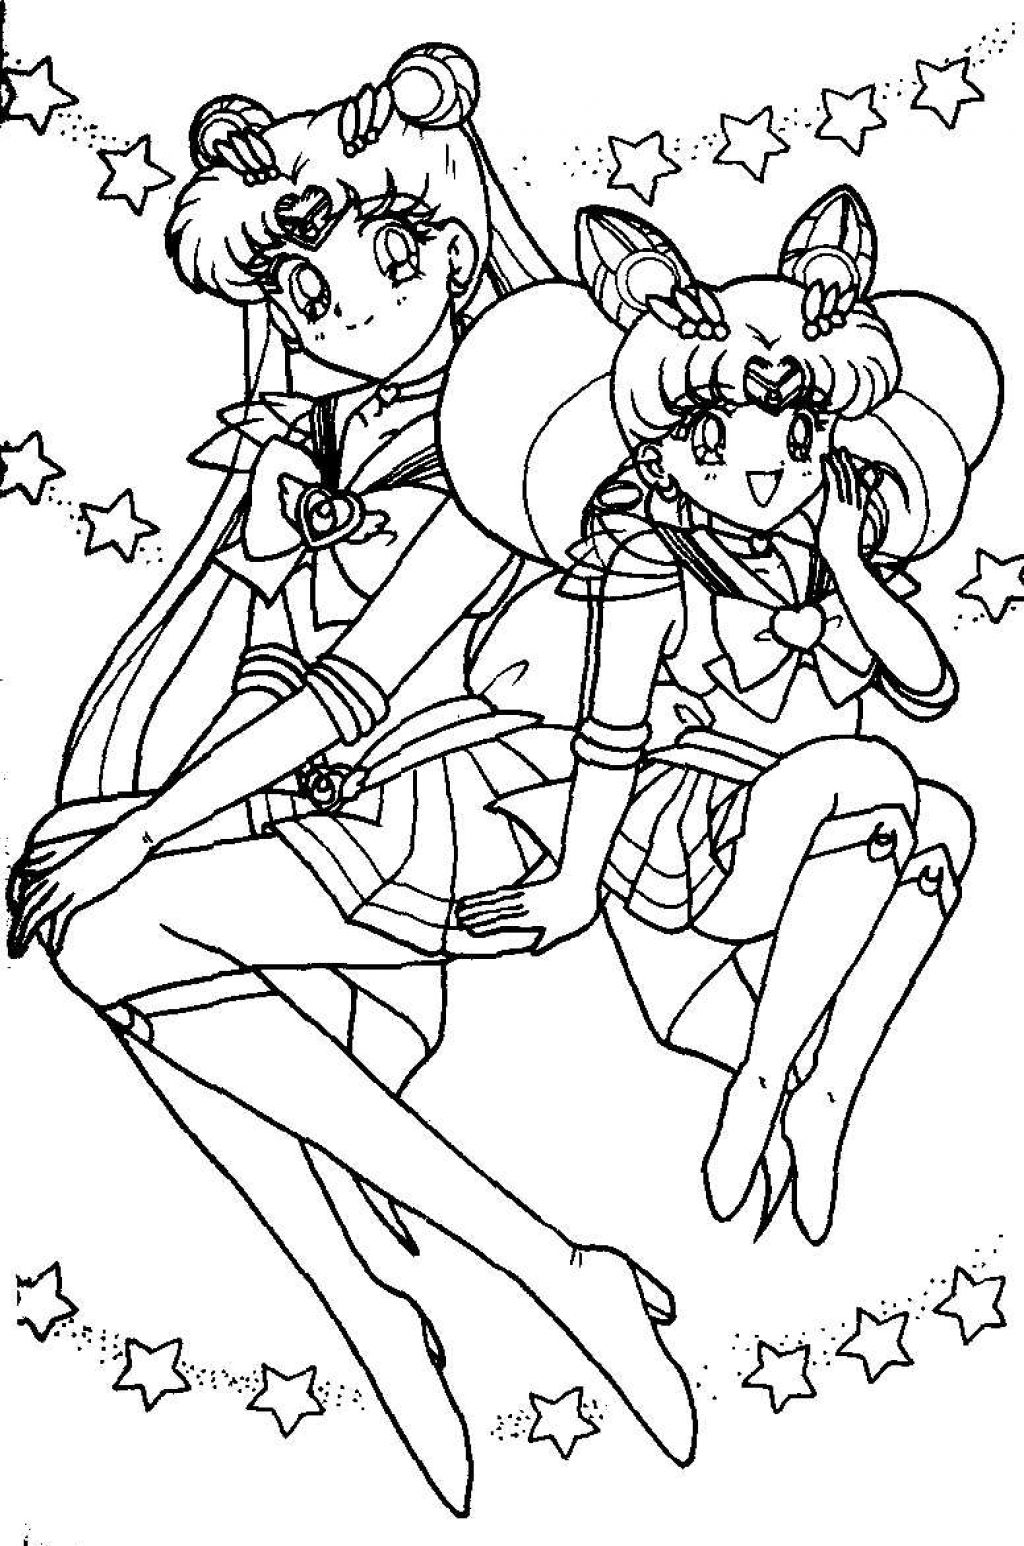 sailor moon online coloring pages - photo#23